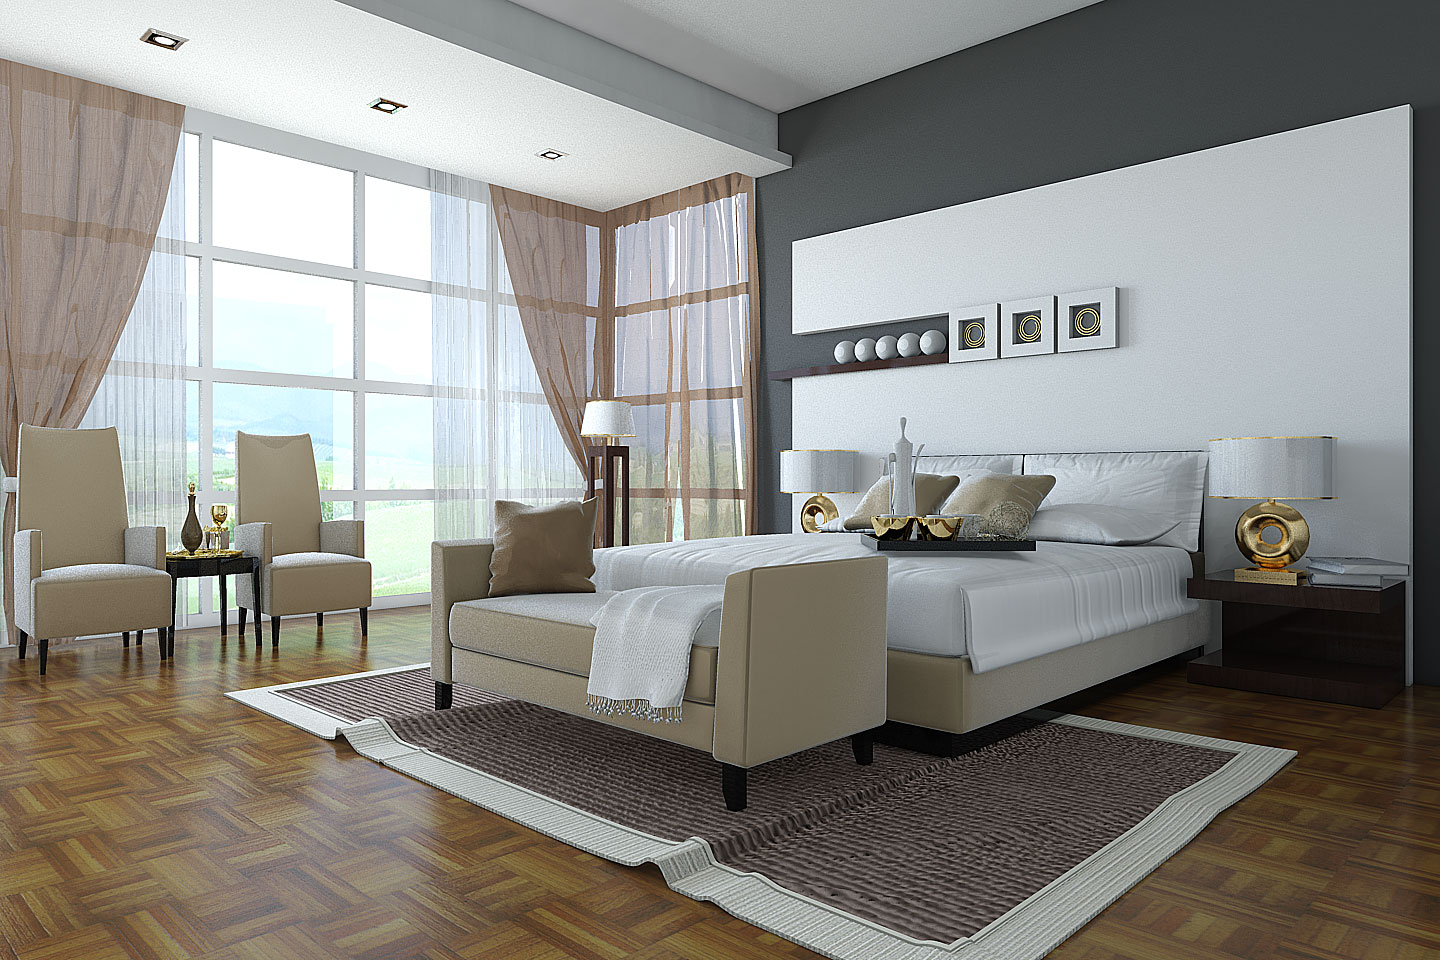 Greatest home decor accessories beautiful designer bedrooms for Bedroom layout design